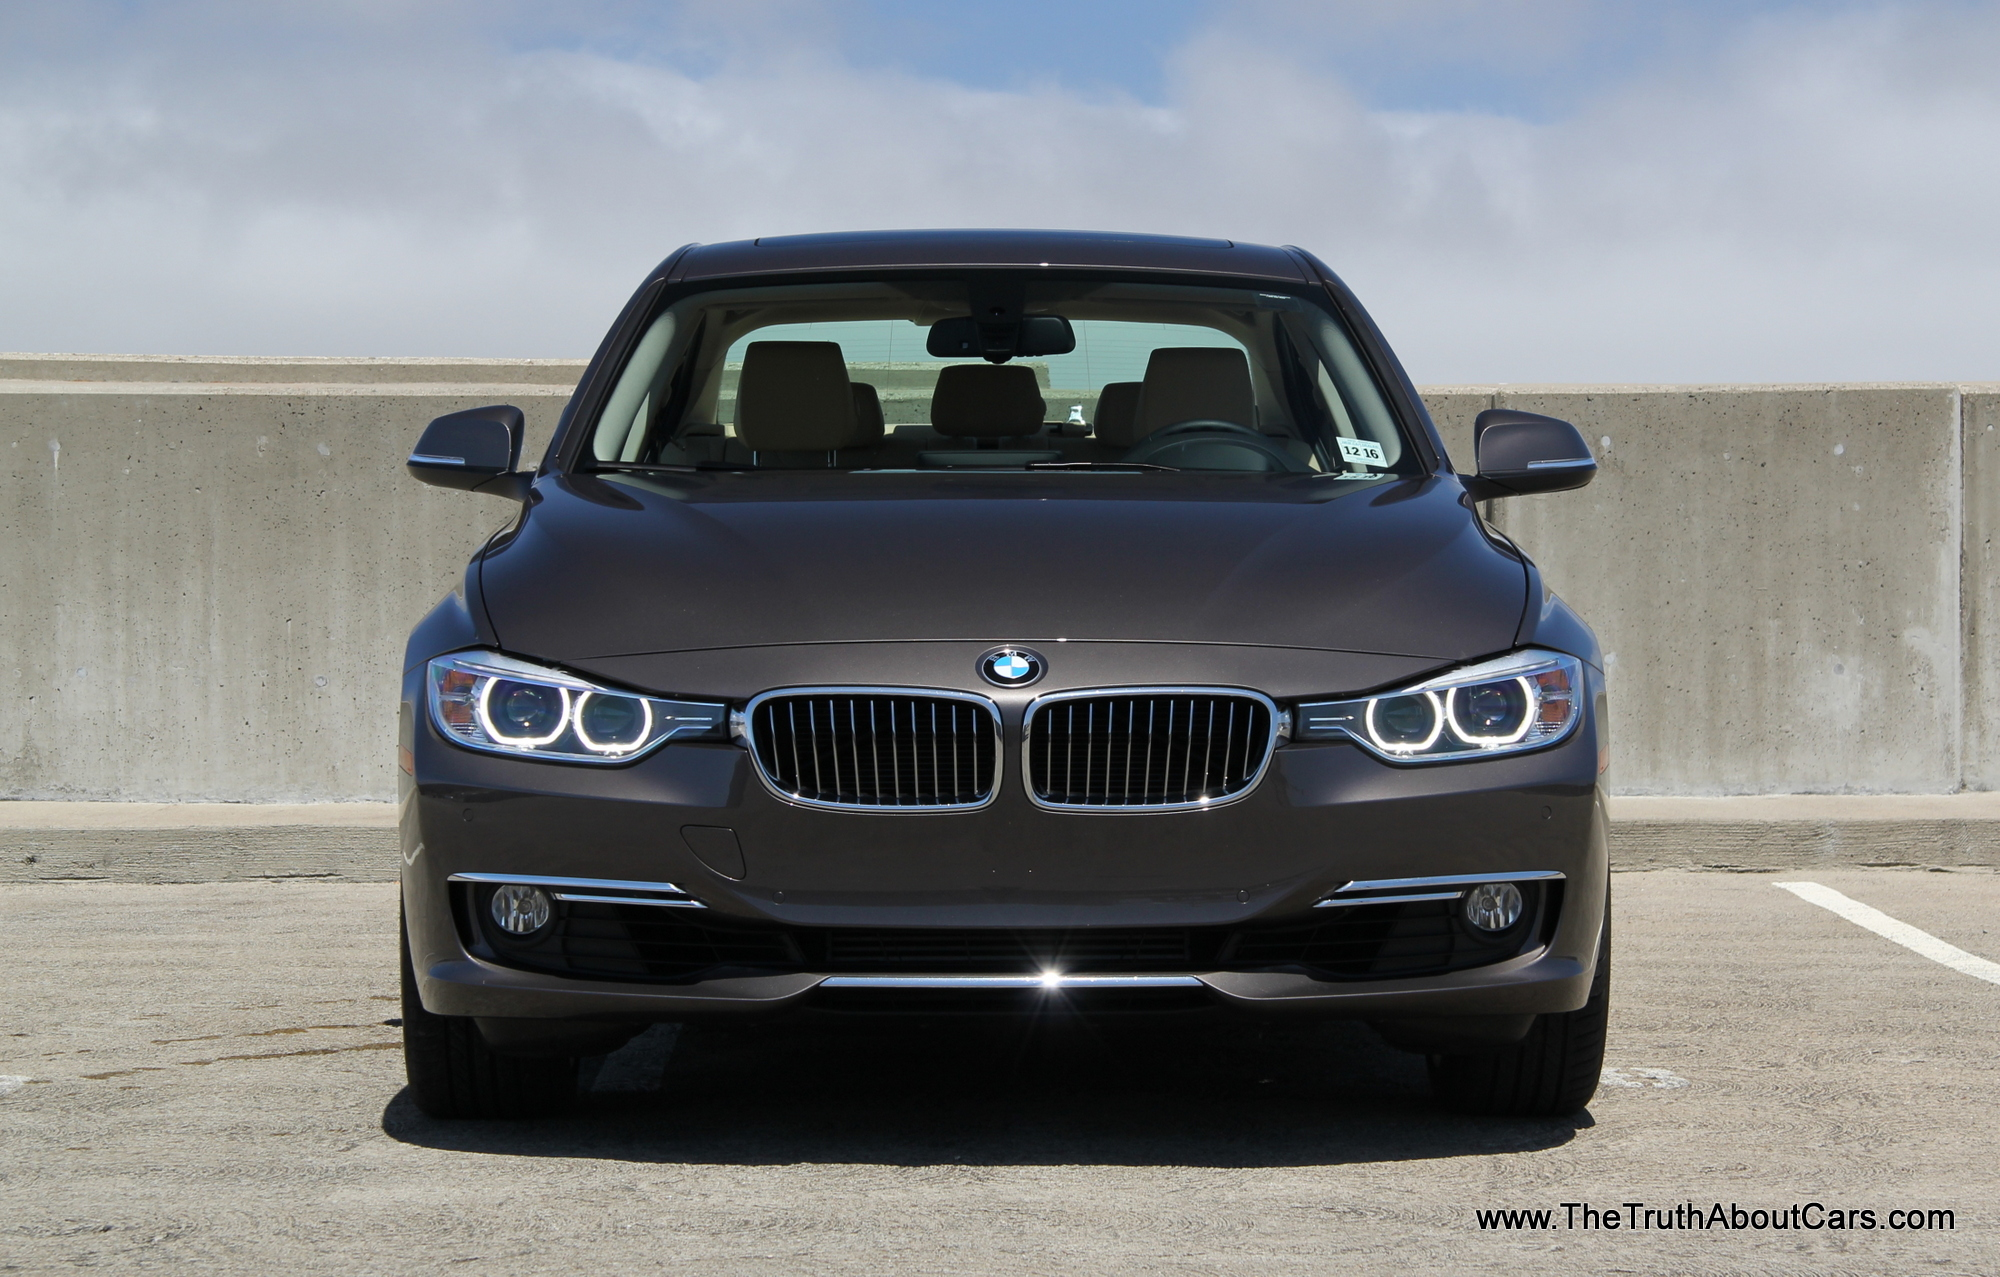 Bmw Exterior: 2012 BMW 328i, Exterior, Front, Photography Courtesy Of